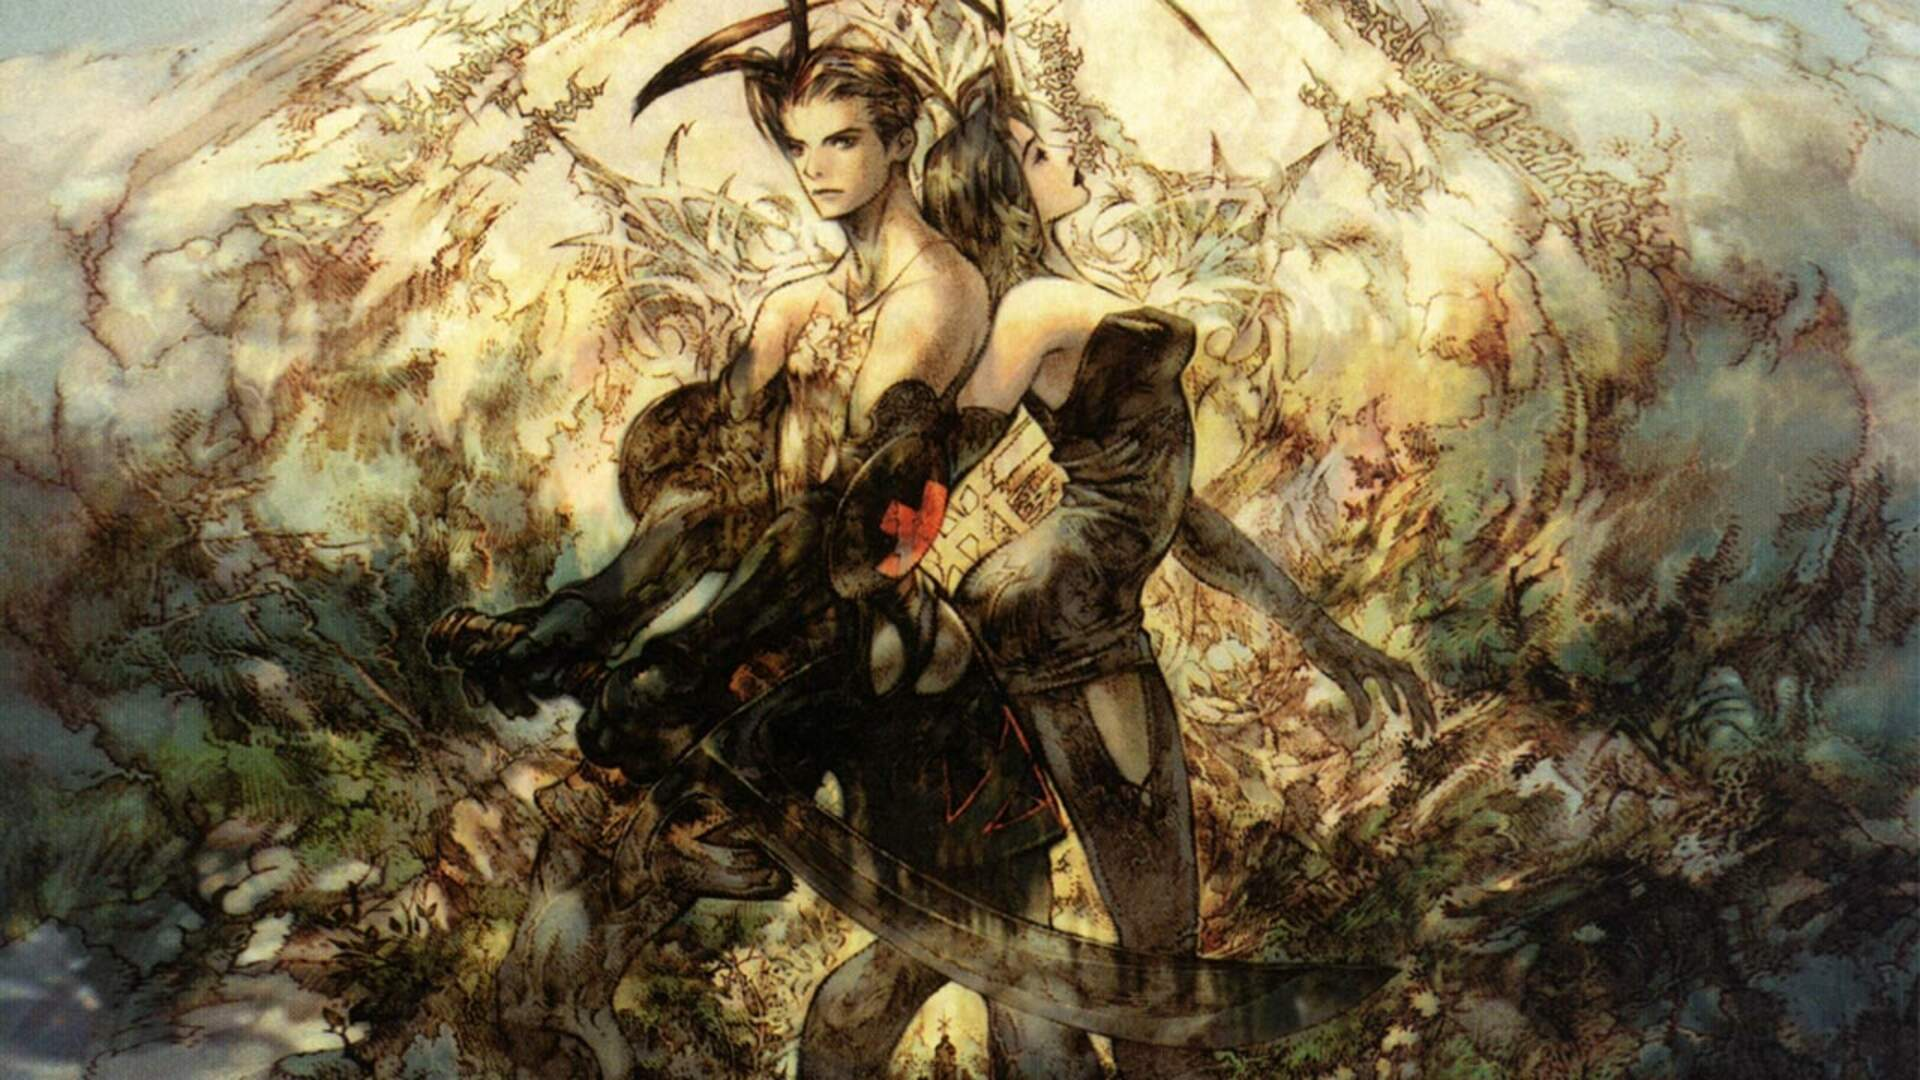 Abandoned Vagrant Story 2 Prologue Has Some Enticing Ties to Final Fantasy 14